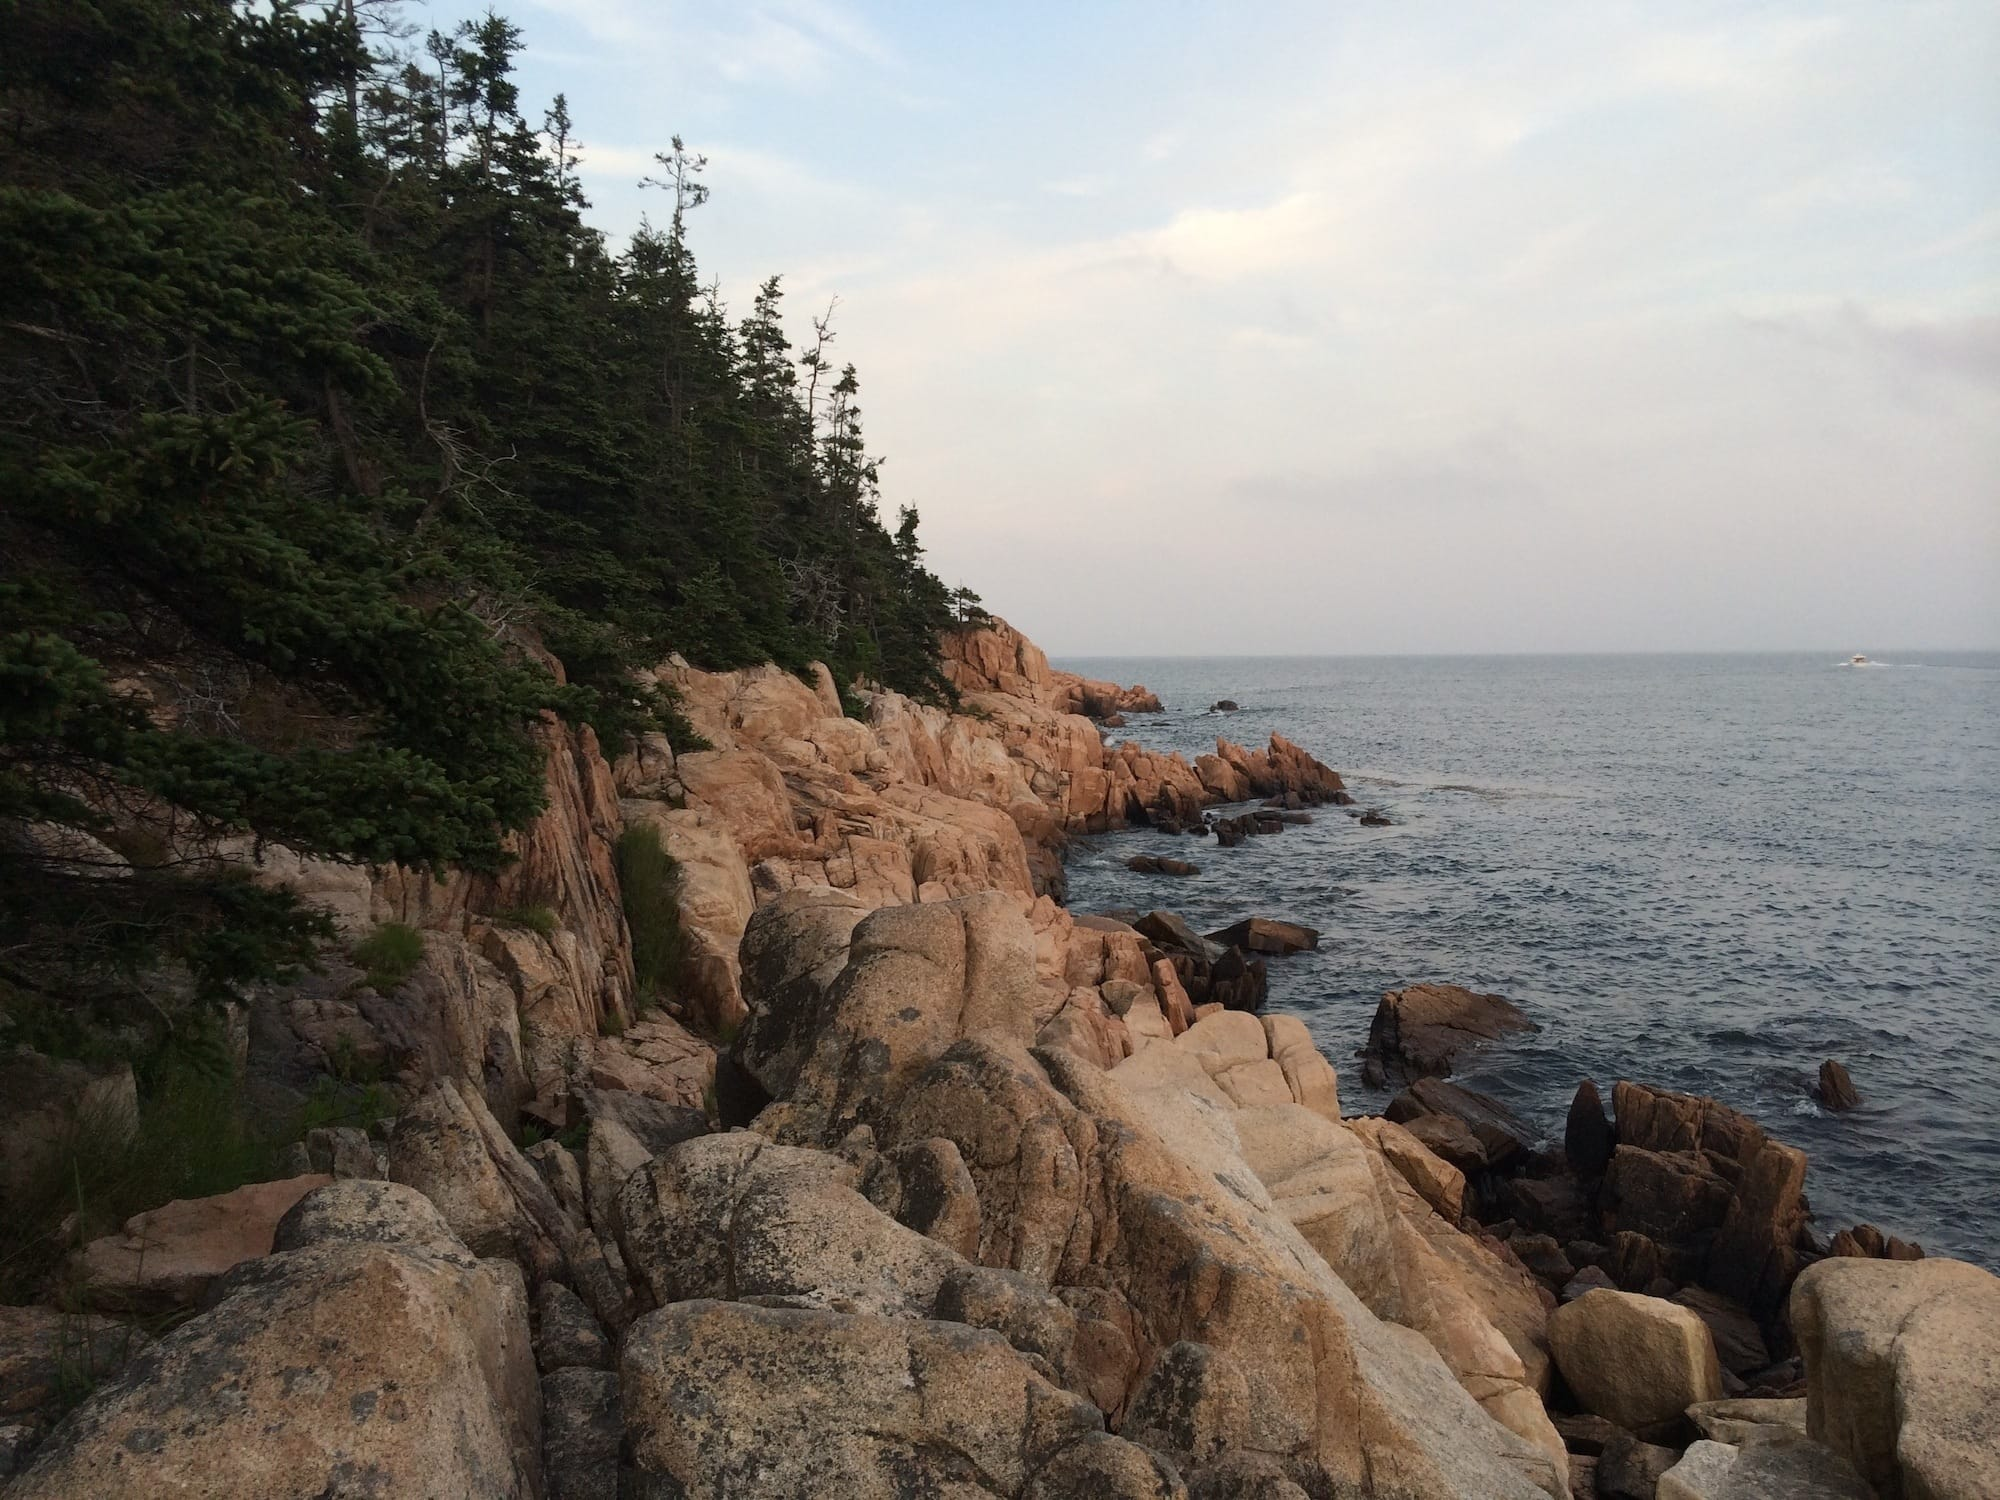 Here are the top things to do in Acadia National Park, Maine including the best hiking trails, scenic drives, eats, sights, and more.